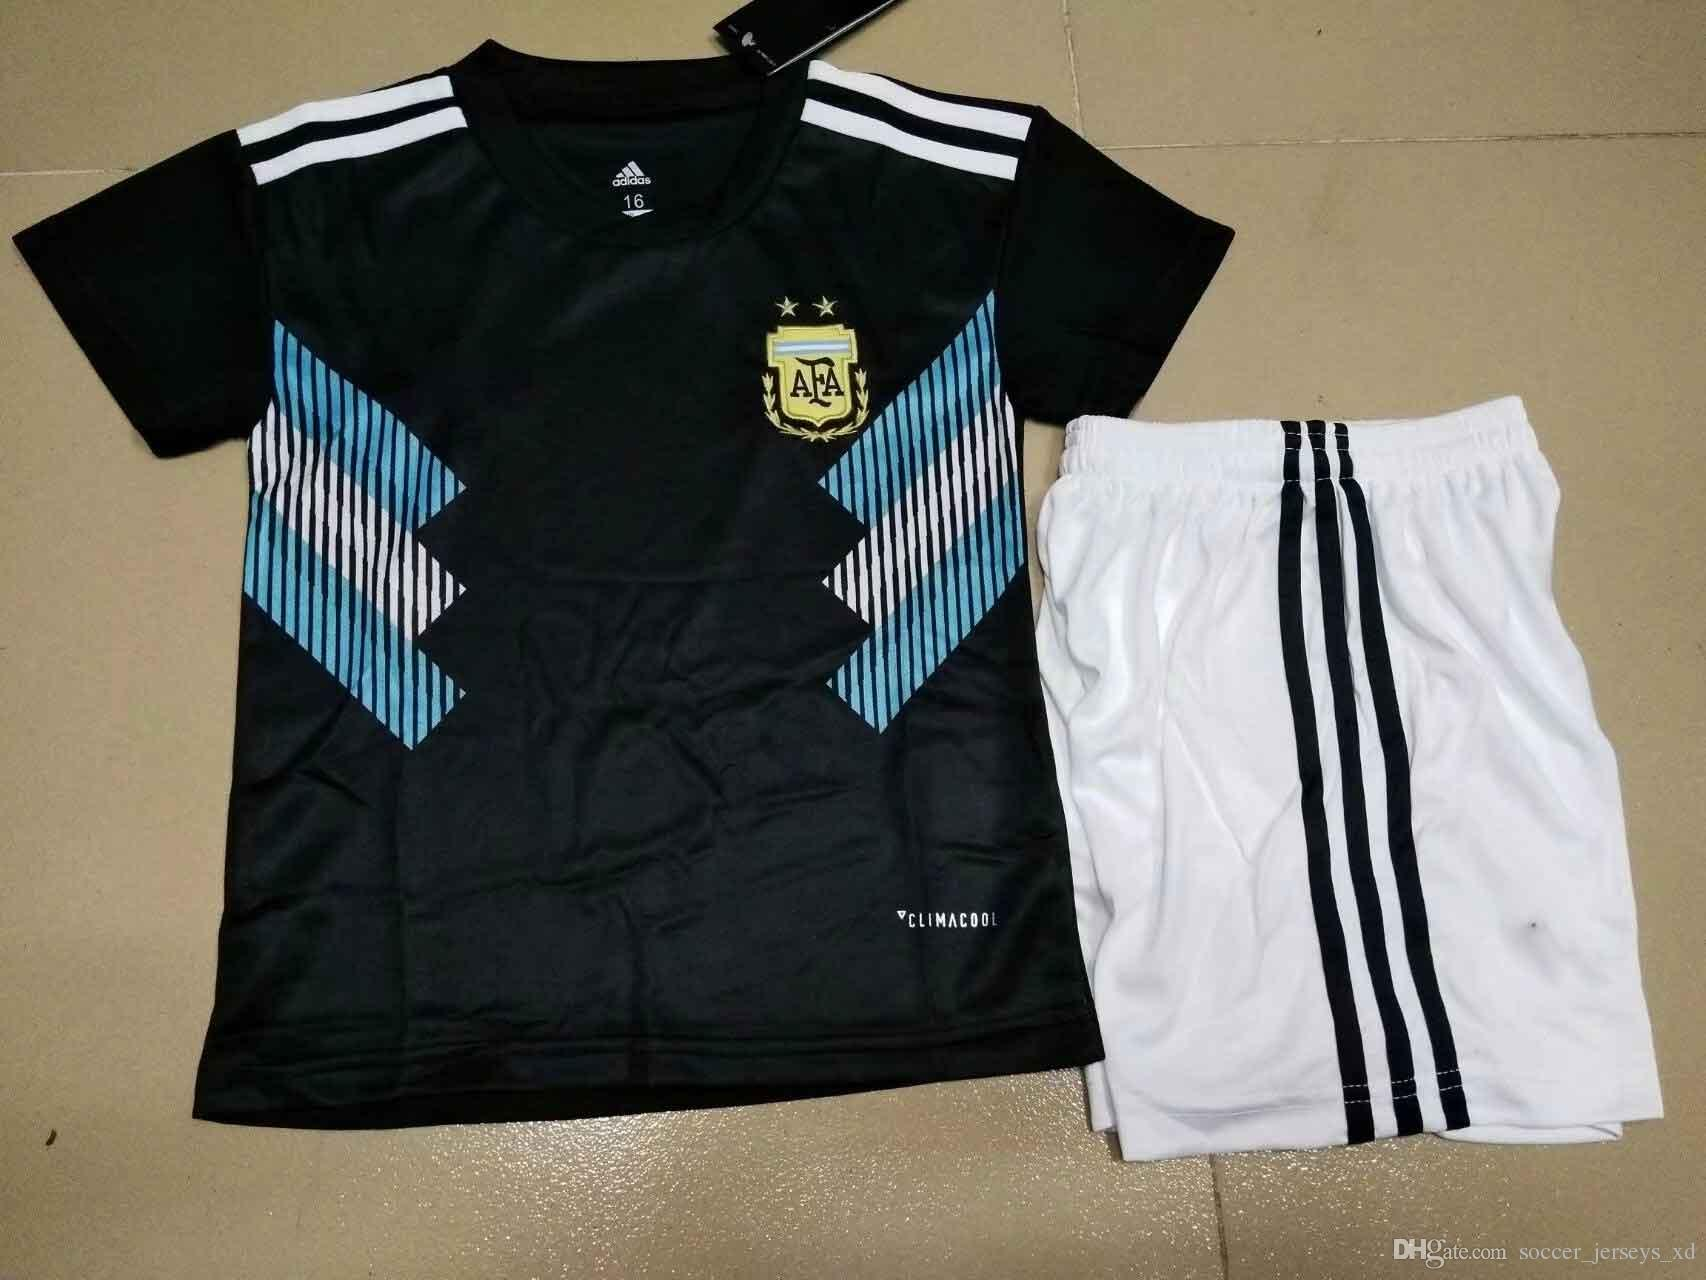 New 2018 Soccer Jersey World Cup Argentina Home Away MESSI DI MARIA AGUERO  Thai Quality Argentina Camisas Football Shirts UK 2019 From  Soccer jerseys xd da48cecbbcd32